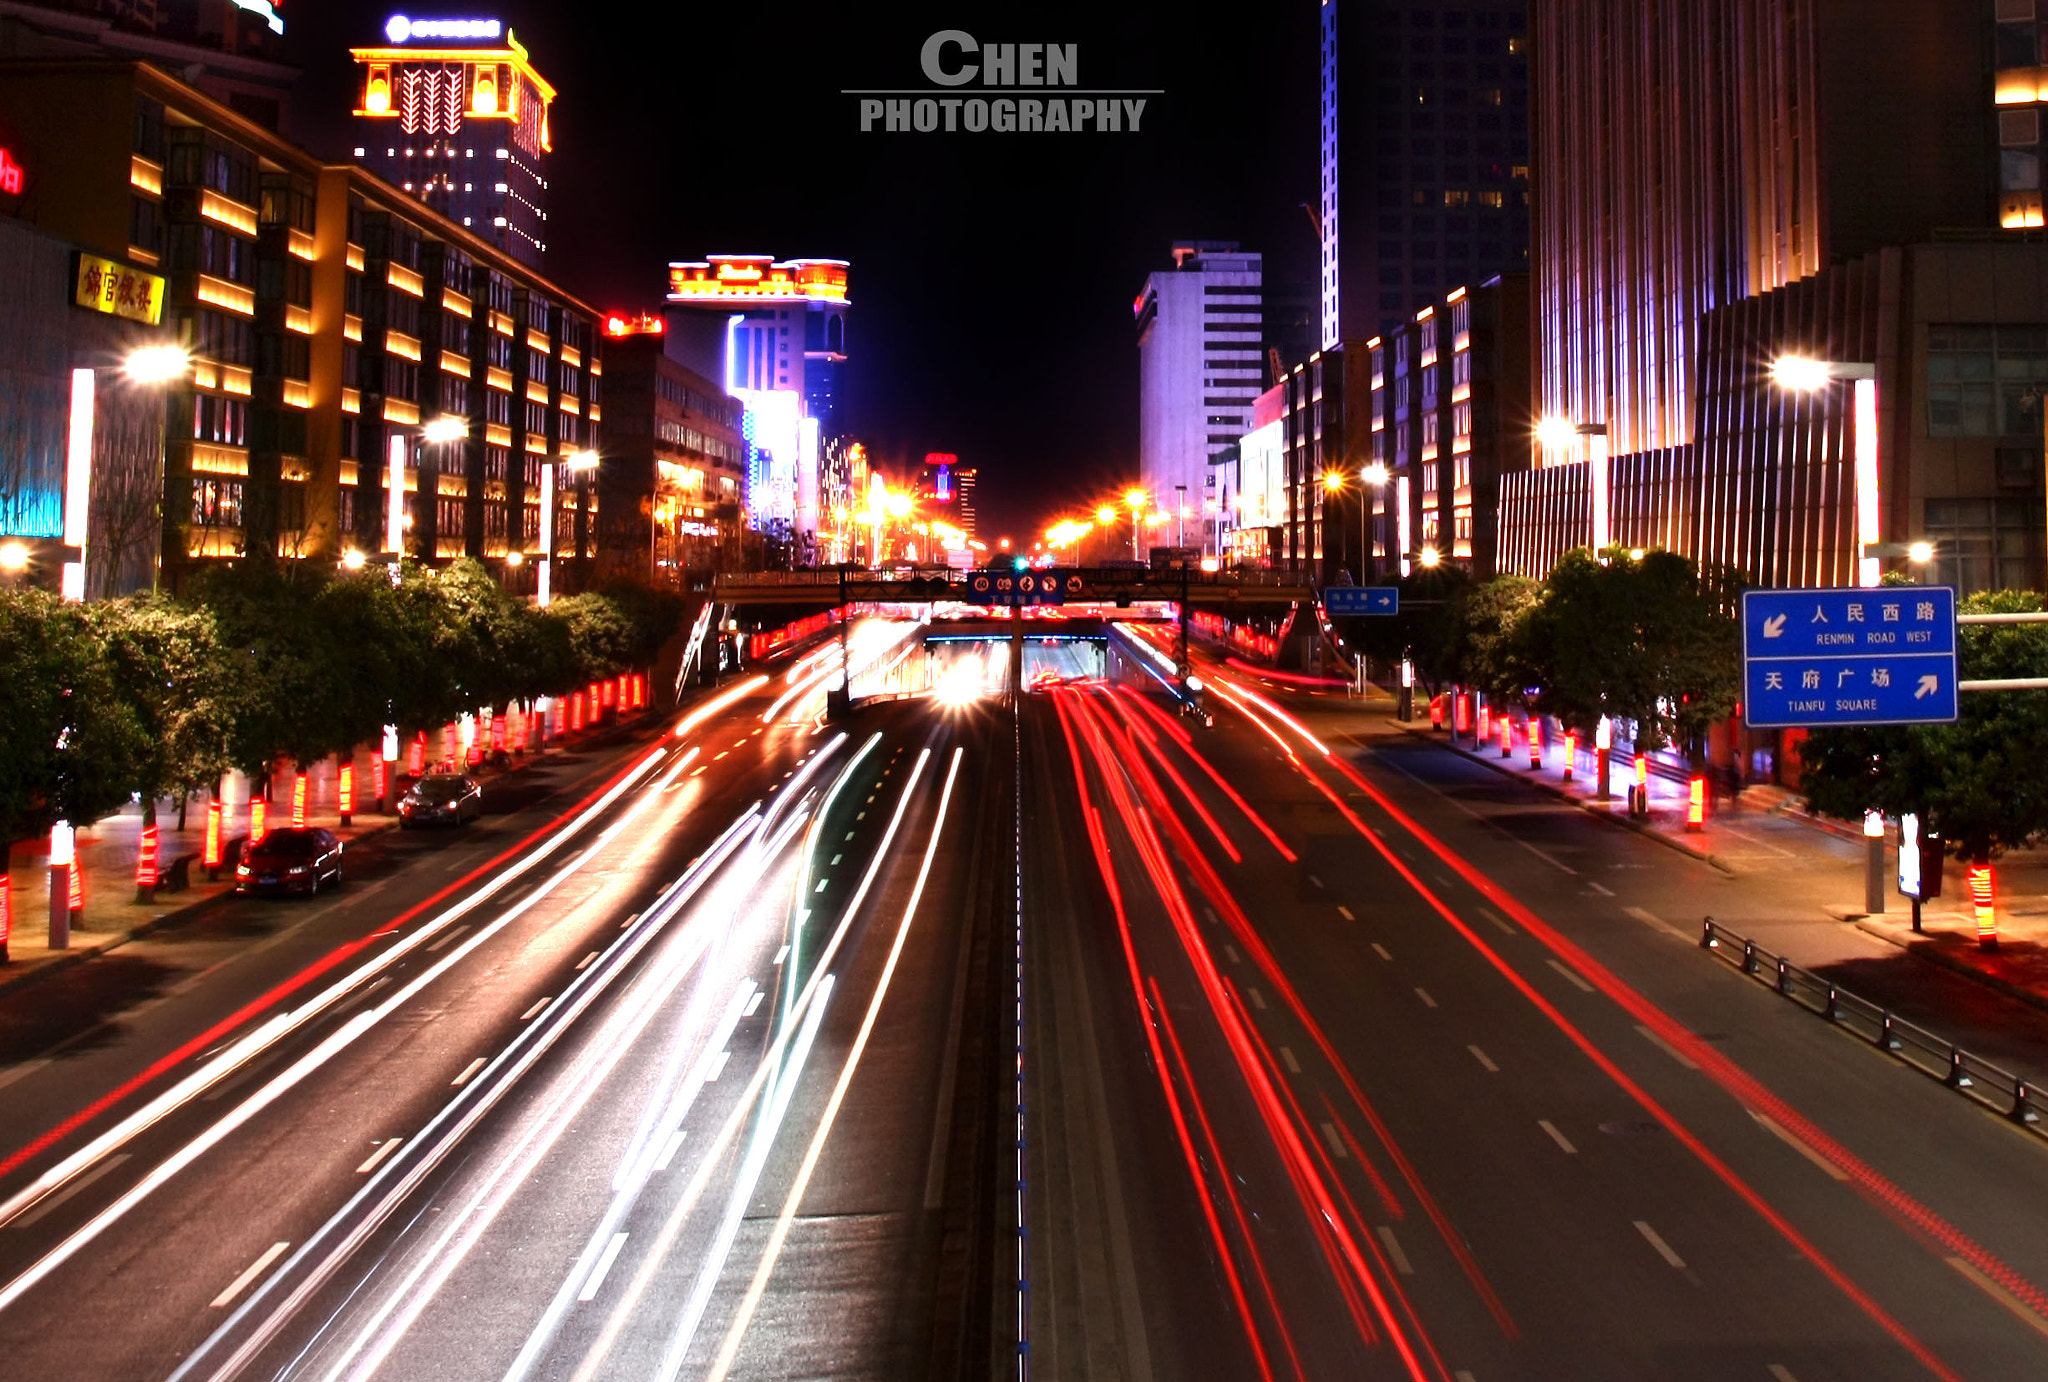 Photograph chain of lights by Evan Chen on 500px